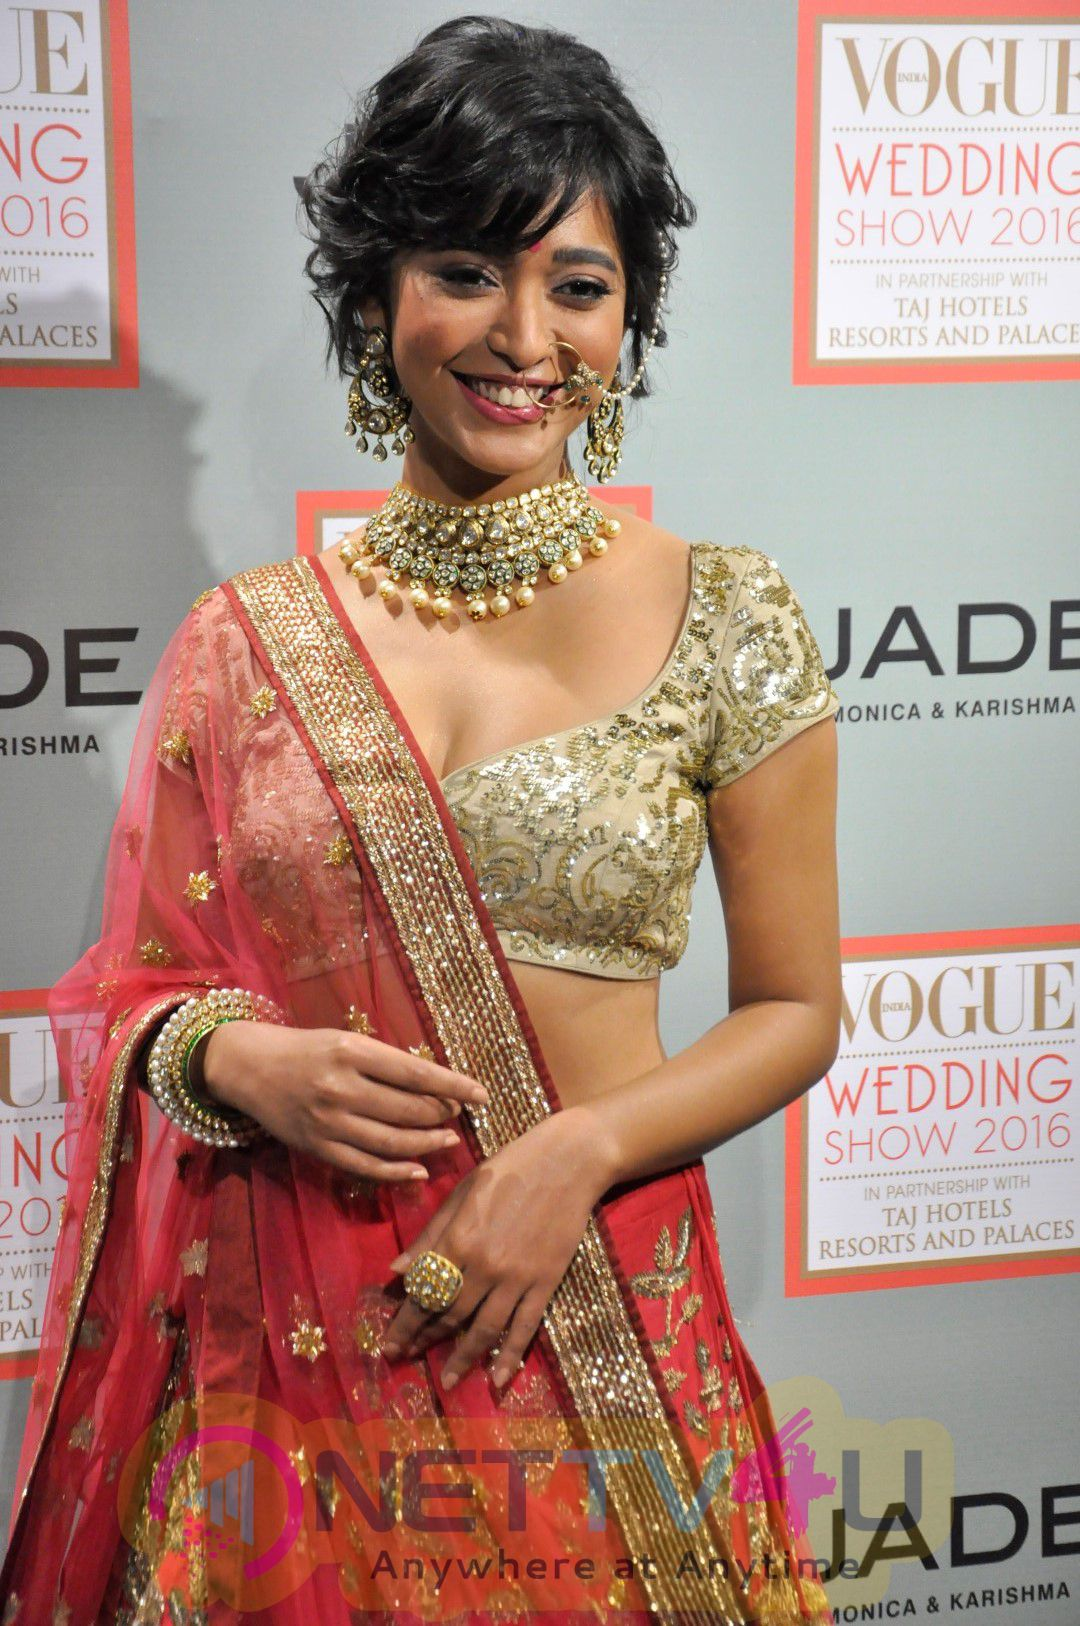 A Prelude To The Vogue Wedding Show 2016 With Actress Sayani Gupta Lovely Stills Hindi Gallery